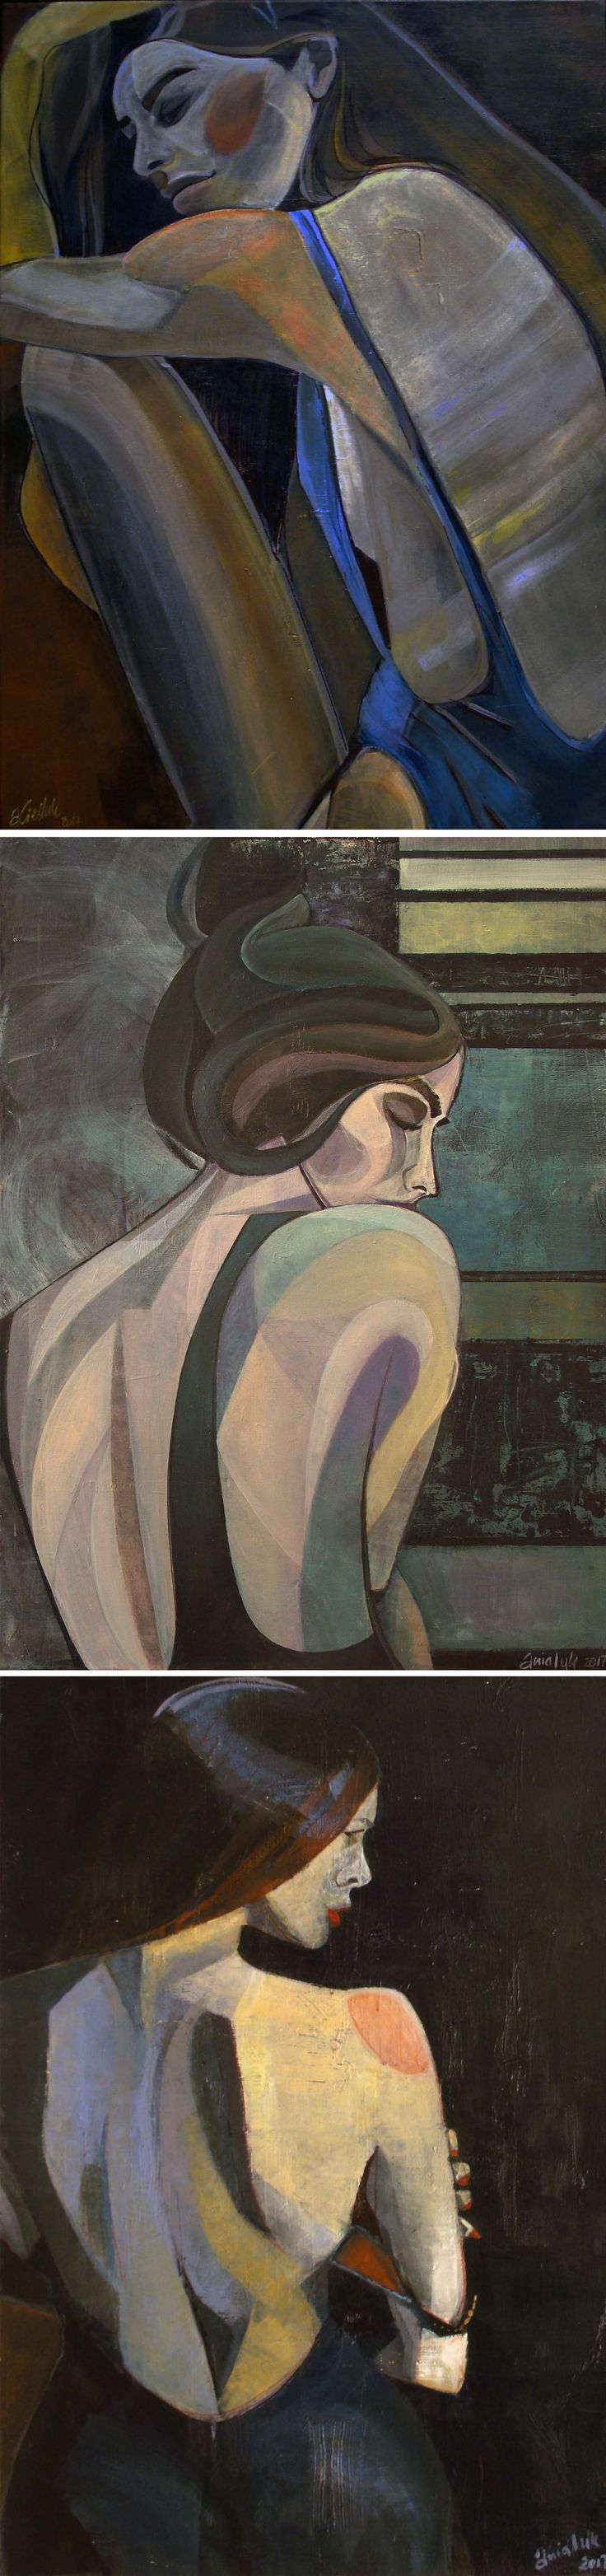 17 best ideas about fine arts degree colorful sensual 1 2 3 new acrylic paintings on canvas depicting sensual women naked